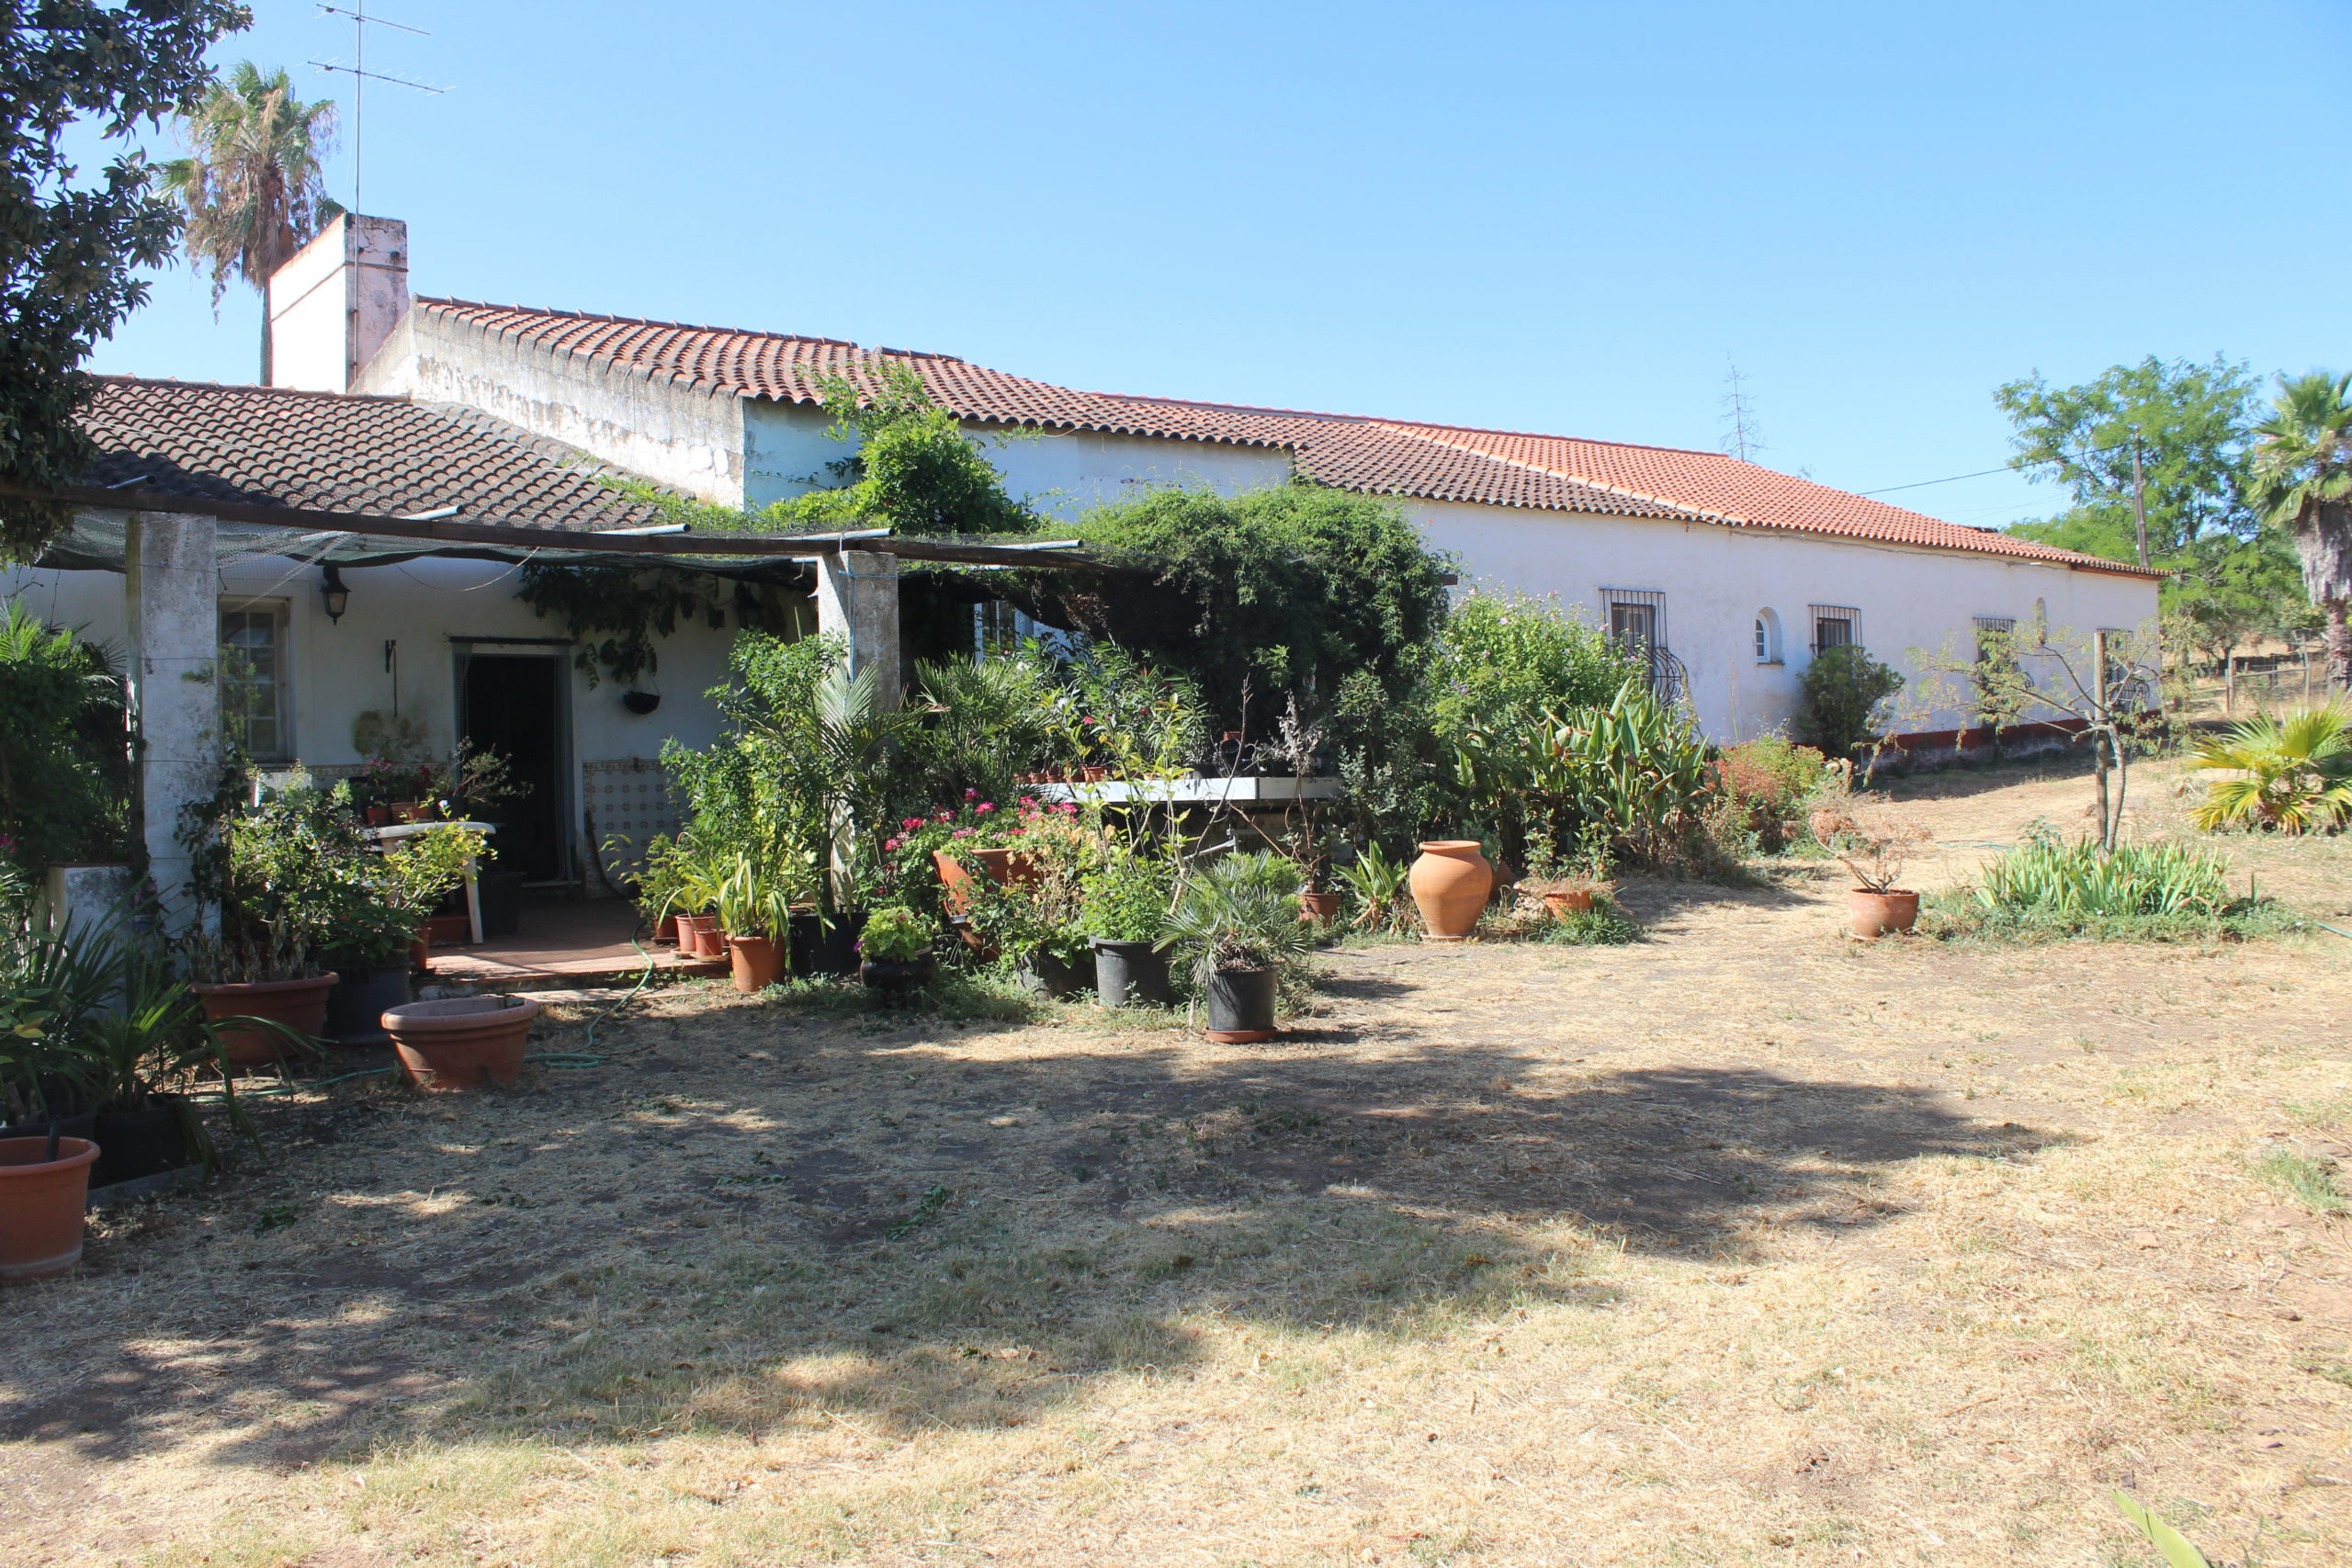 A traditional Herdade, 124.3 Ha, many outbuildings and stables, Alandroal, Alentejo.